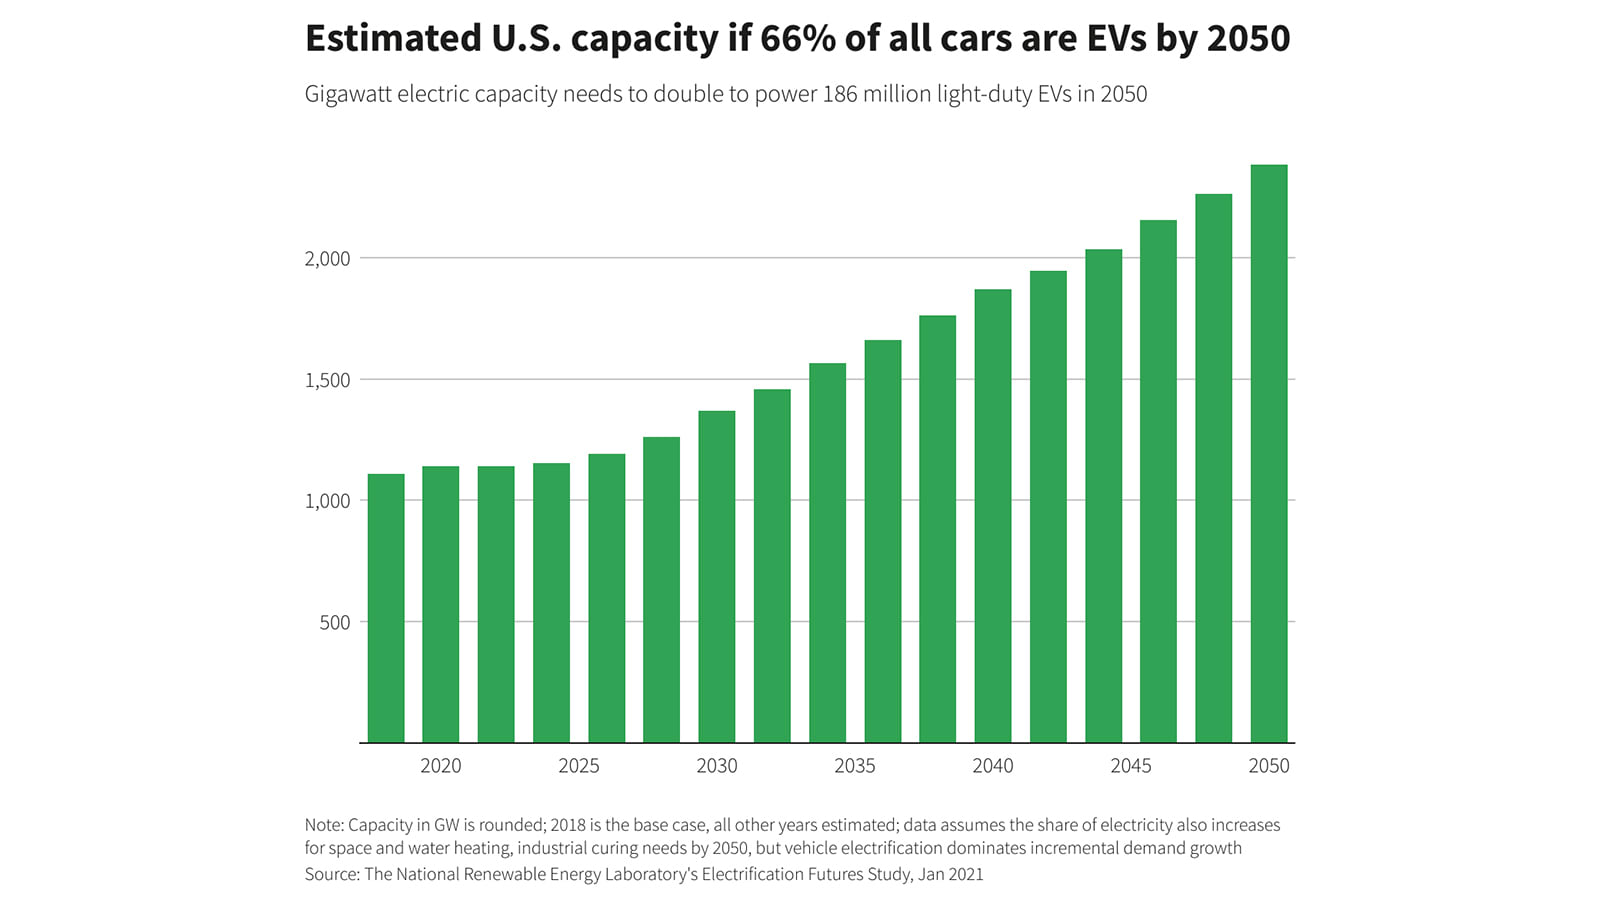 Estimated U.S. capacity if 66% of all cars are EVs by 2050